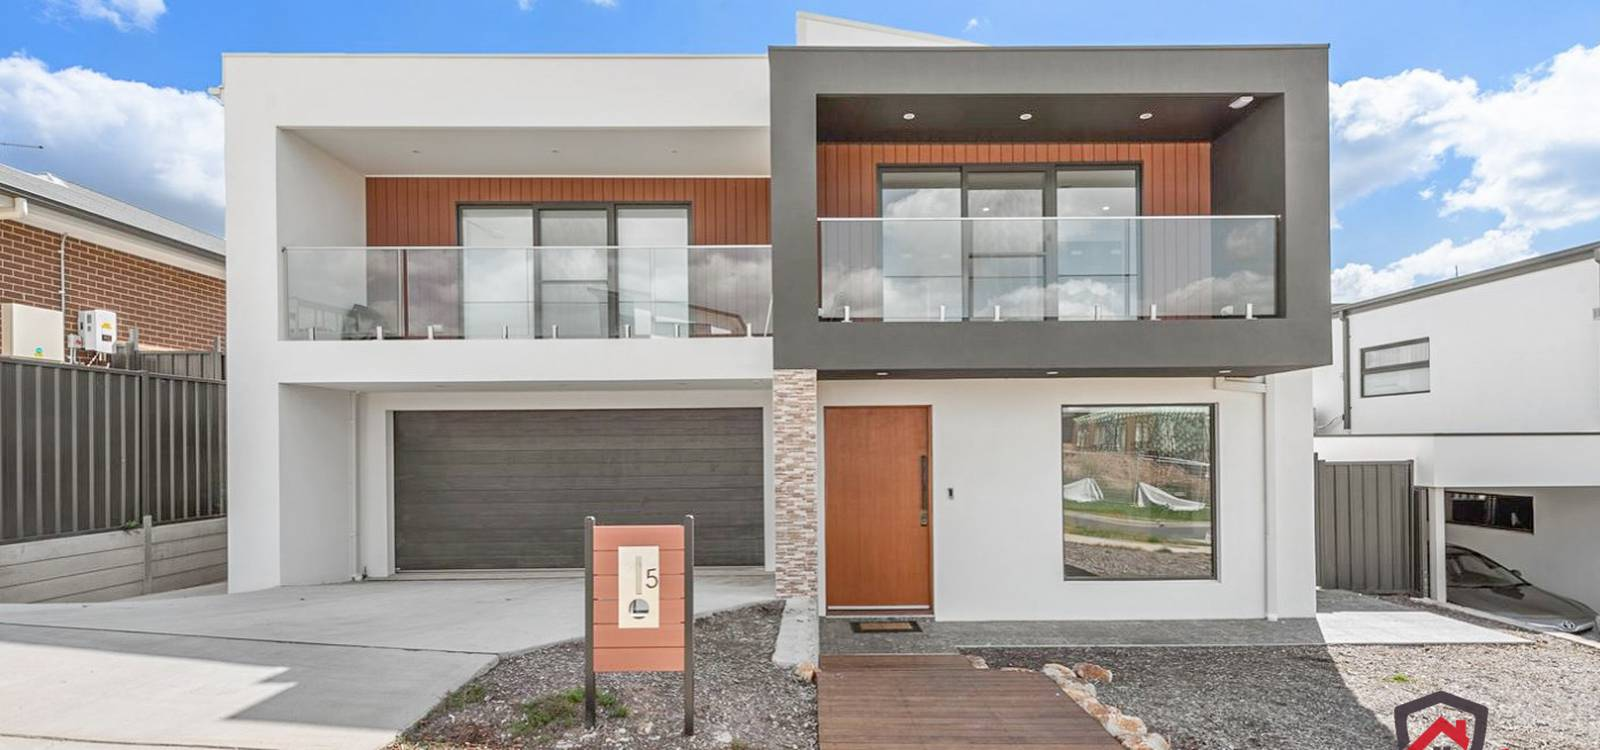 5 Gurd St COOMBS, ACT 2611 - photo 1